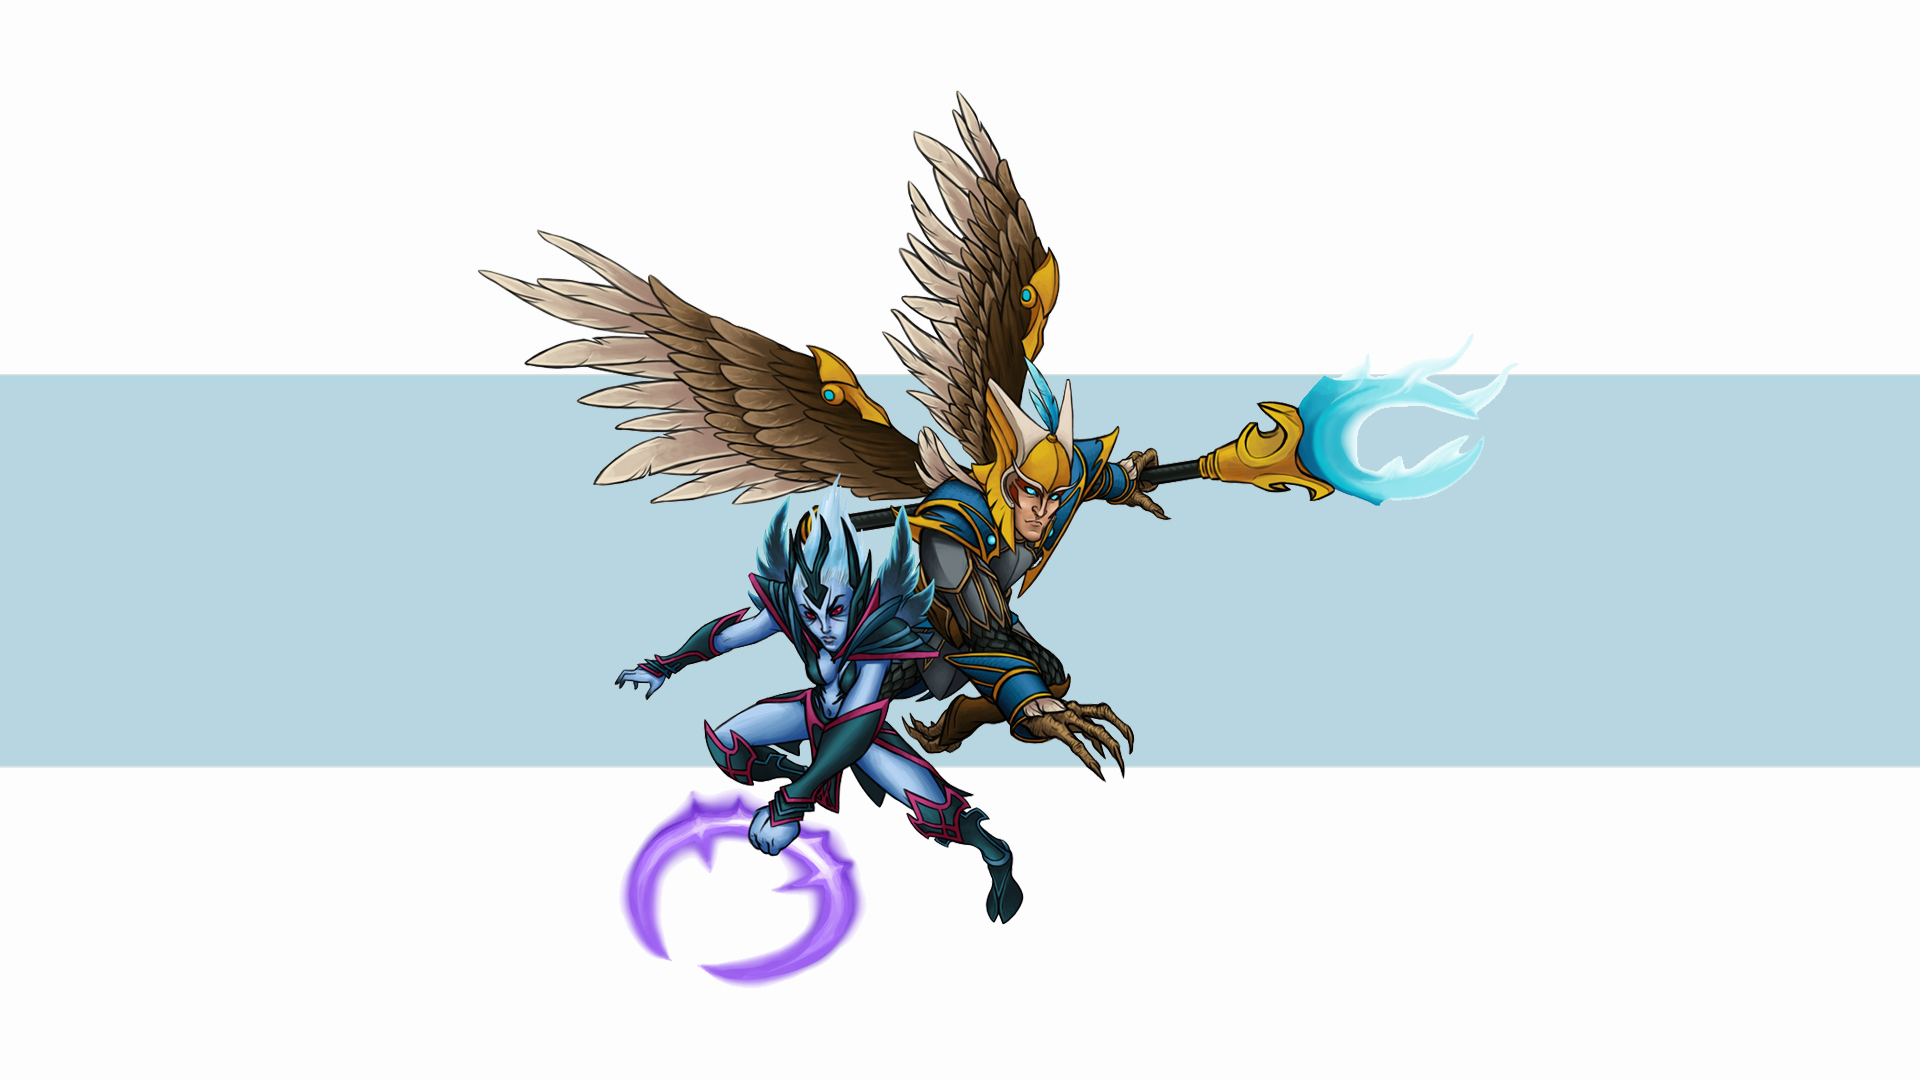 Vengeful Spirit, Skywrath Mage обои